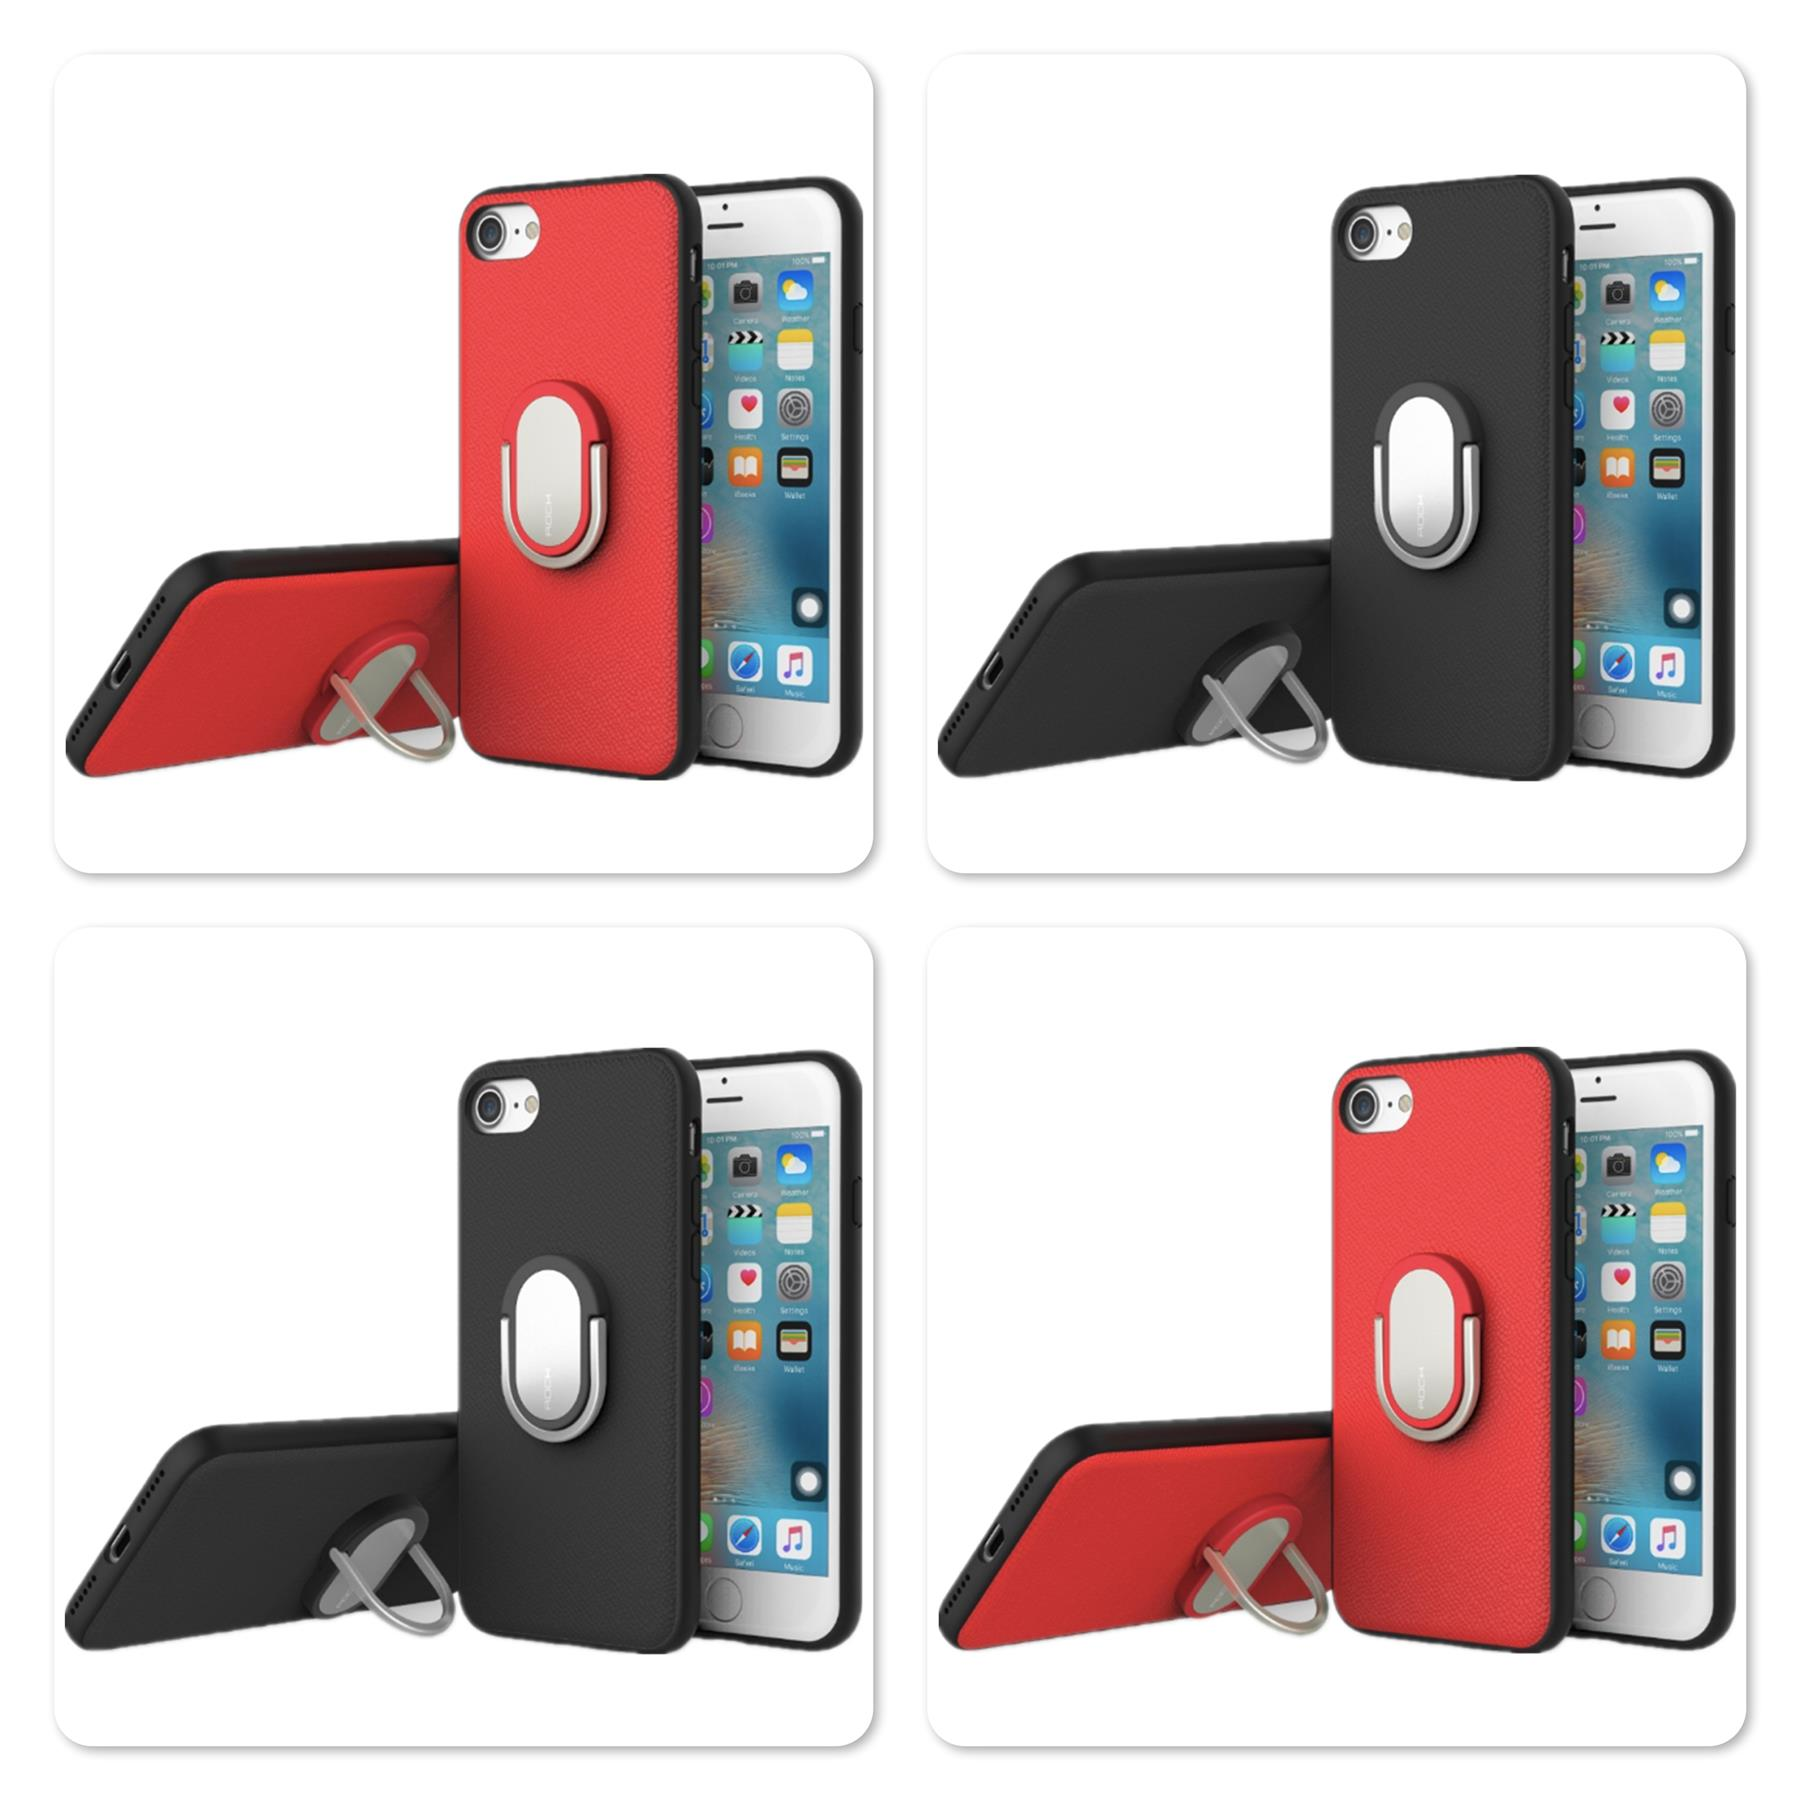 Apple iPhone 7 Plus Rock M1 series Ring Holder Case with Kickstand